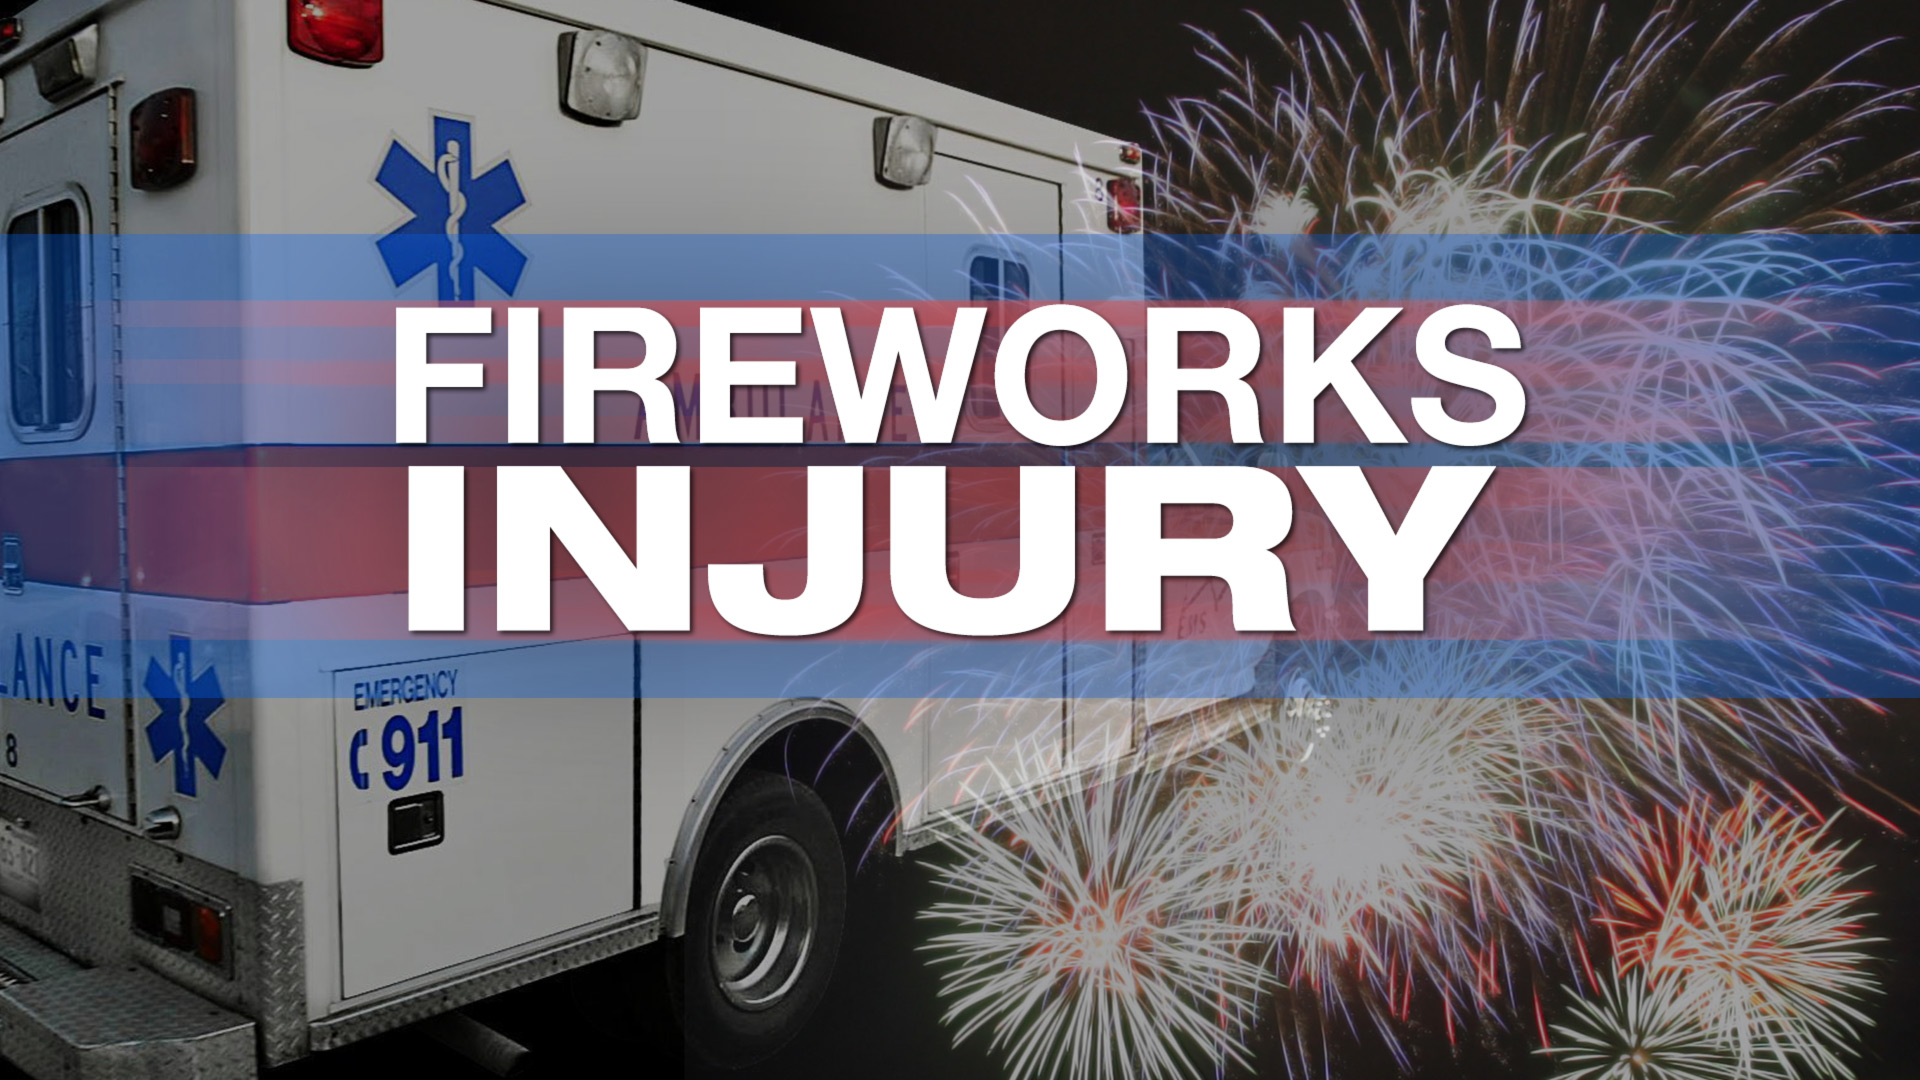 Fireworks-Injury_35899